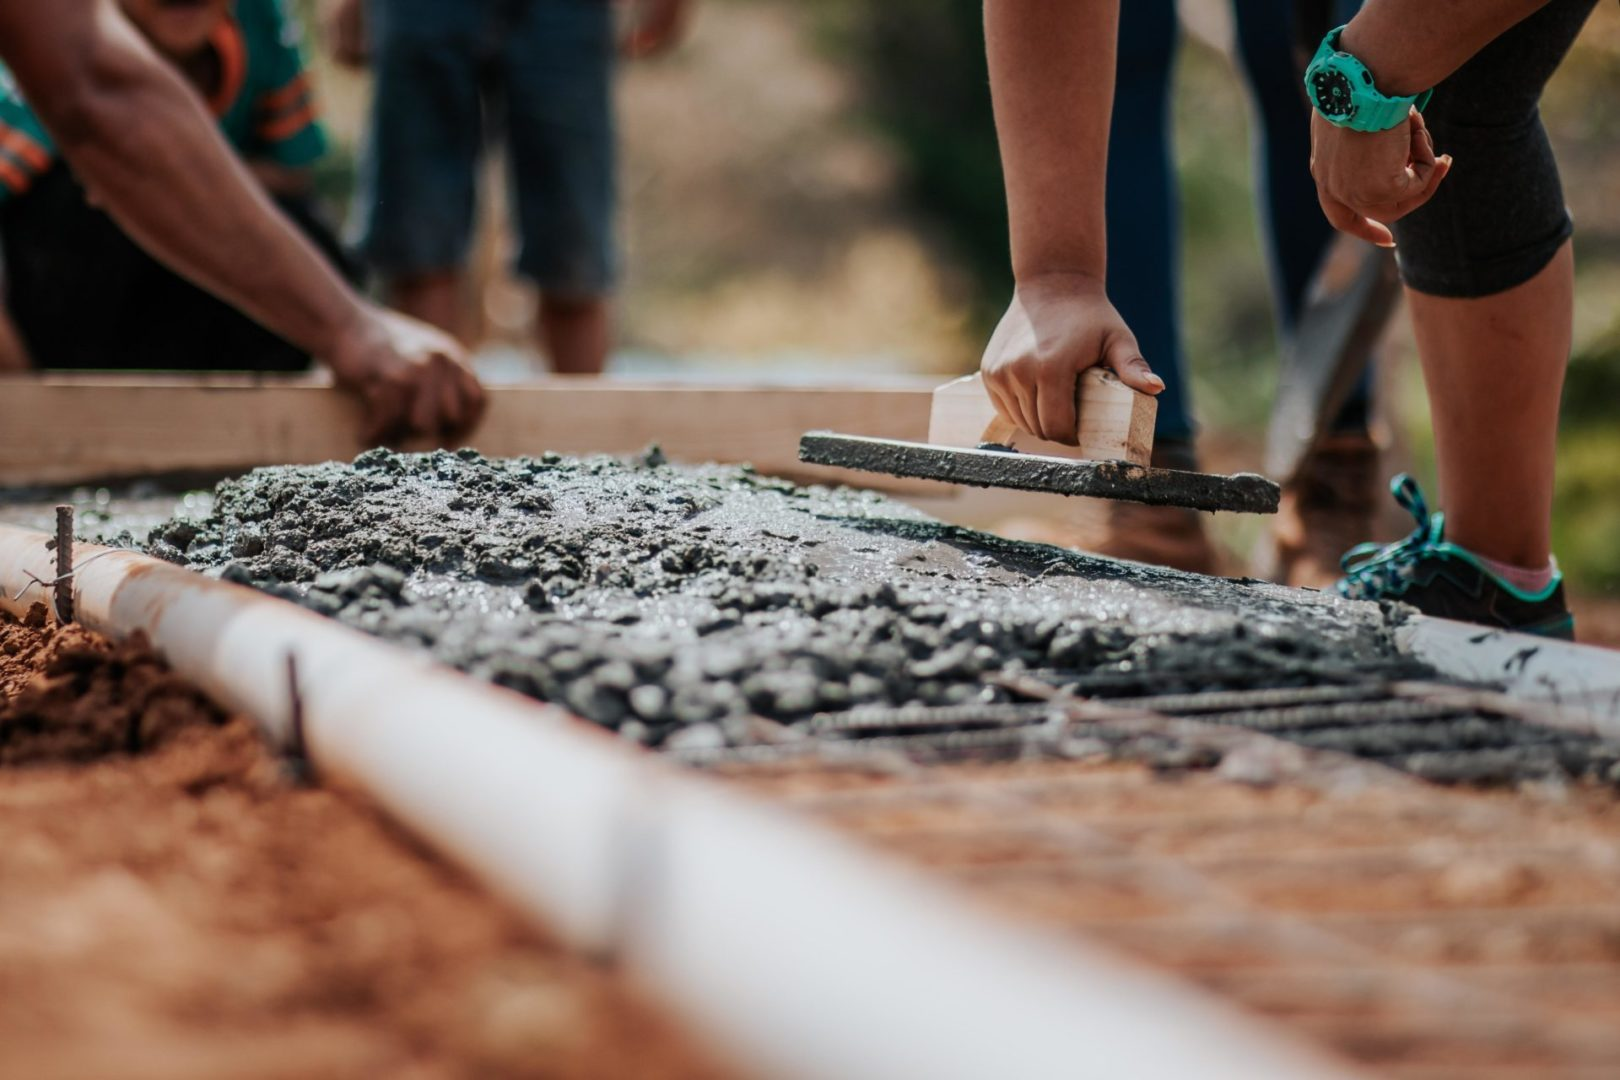 people leveling concrete using tools